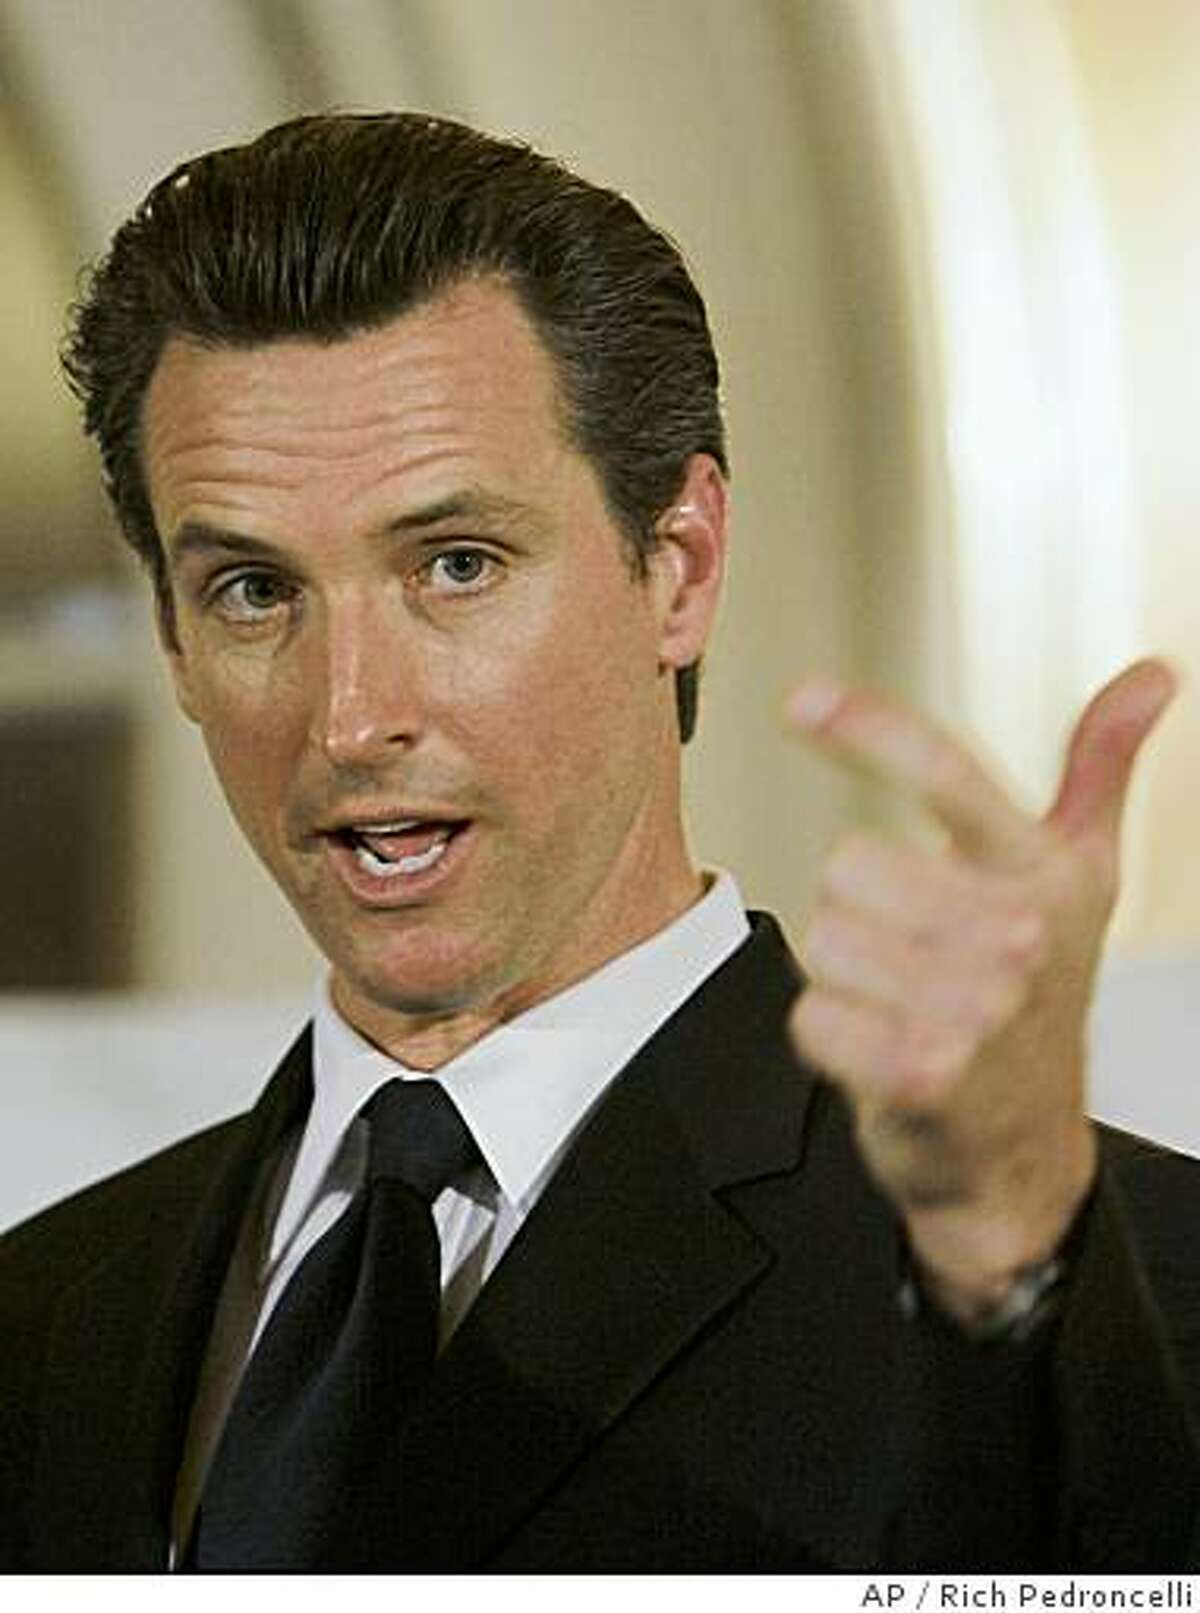 ** FILE ** In this Tuesday, March 25, 2008 file picture, San Francisco Mayor Gavin Newsom addresses the Sacramento Press Club in Sacramento, Calif. Newsom, a Democrat best known for challenging California's ban on same-sex marriage early in his first term, filed papers on Tuesday, July 1, 2008 to form an exploratory committee so he can start raising money and conducting polls for a possible gubernatorial campaign. (AP Photo/Rich Pedroncelli)